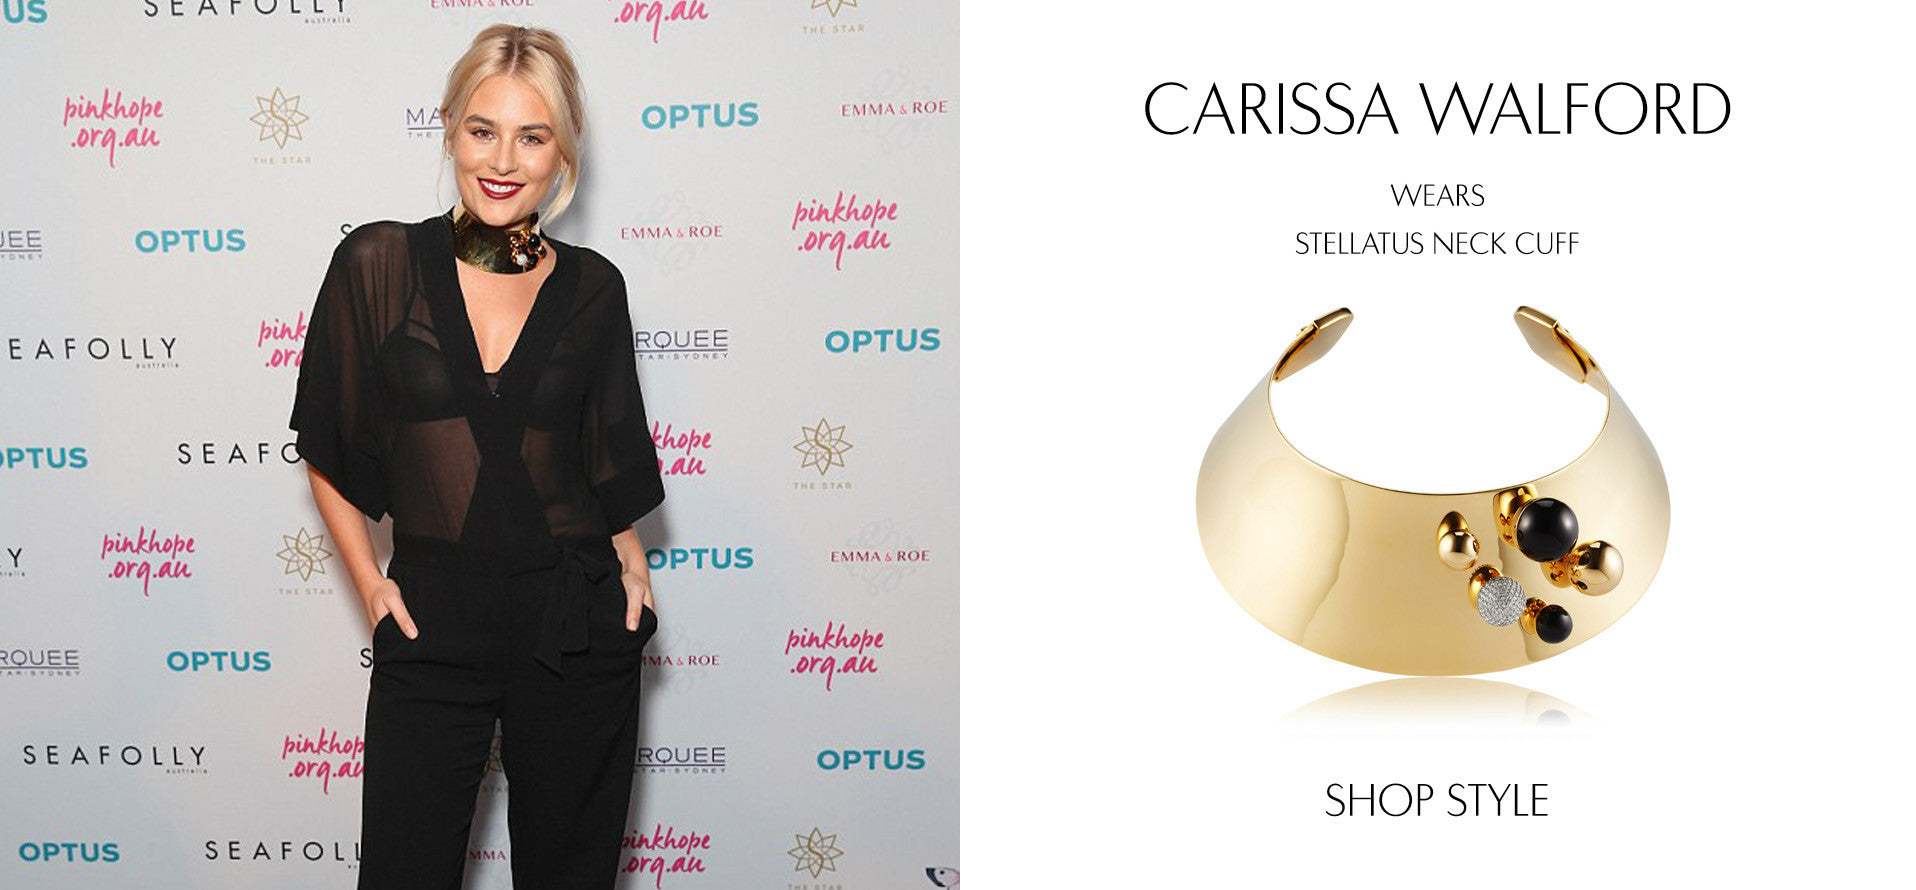 Carissa Walford attends the Pinky Promise gala in Sydney wearing Sarina Suriano Stellatus Neck cuff in Black onyx